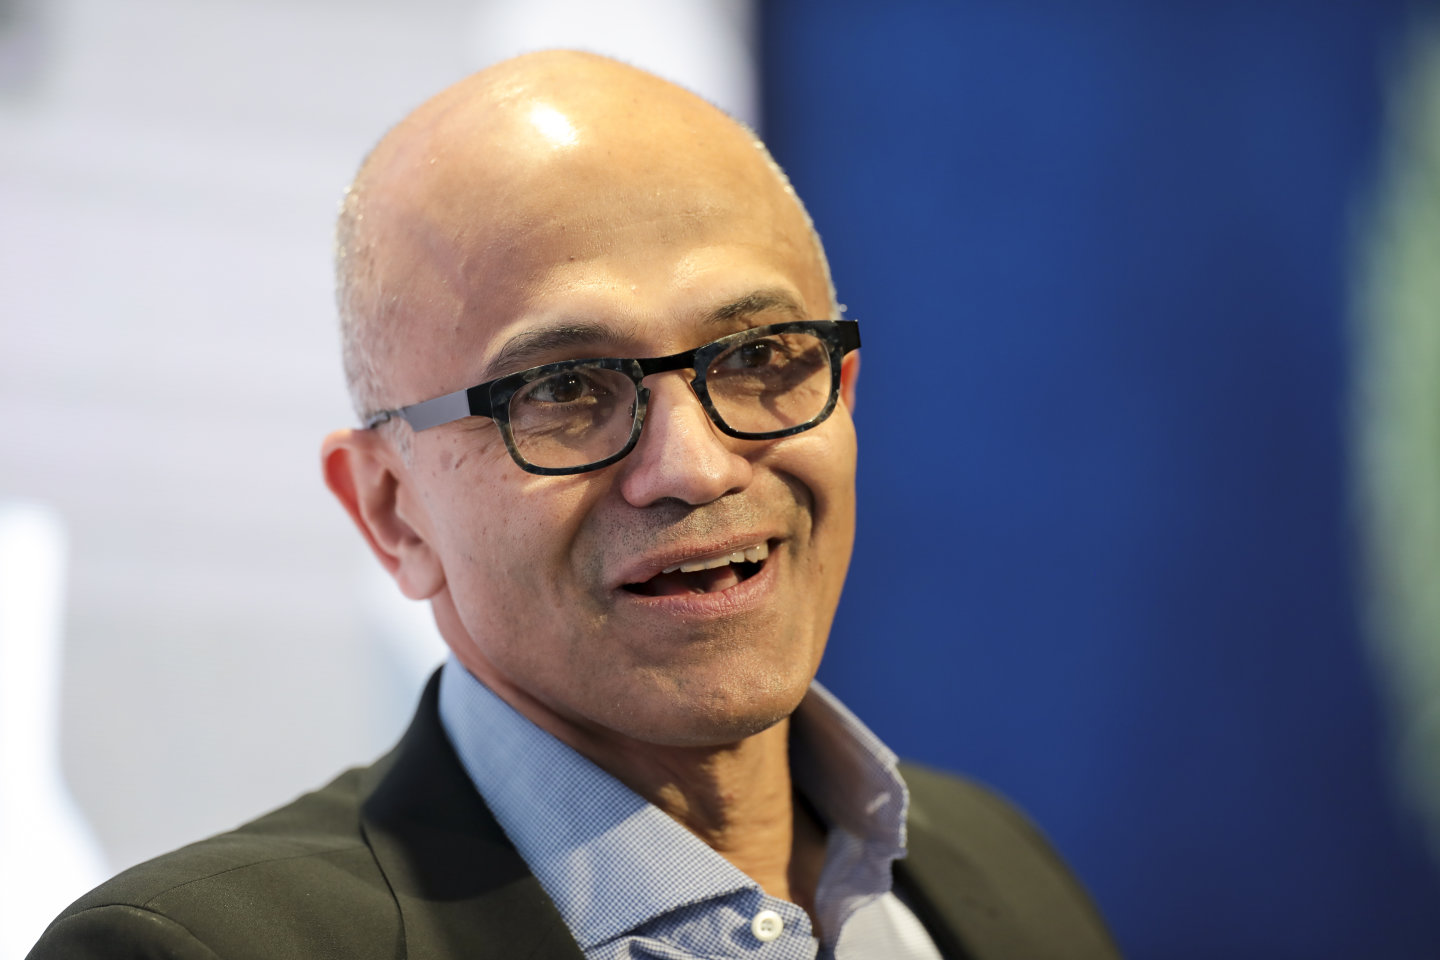 How Satya Nadella added $850b to Microsoft